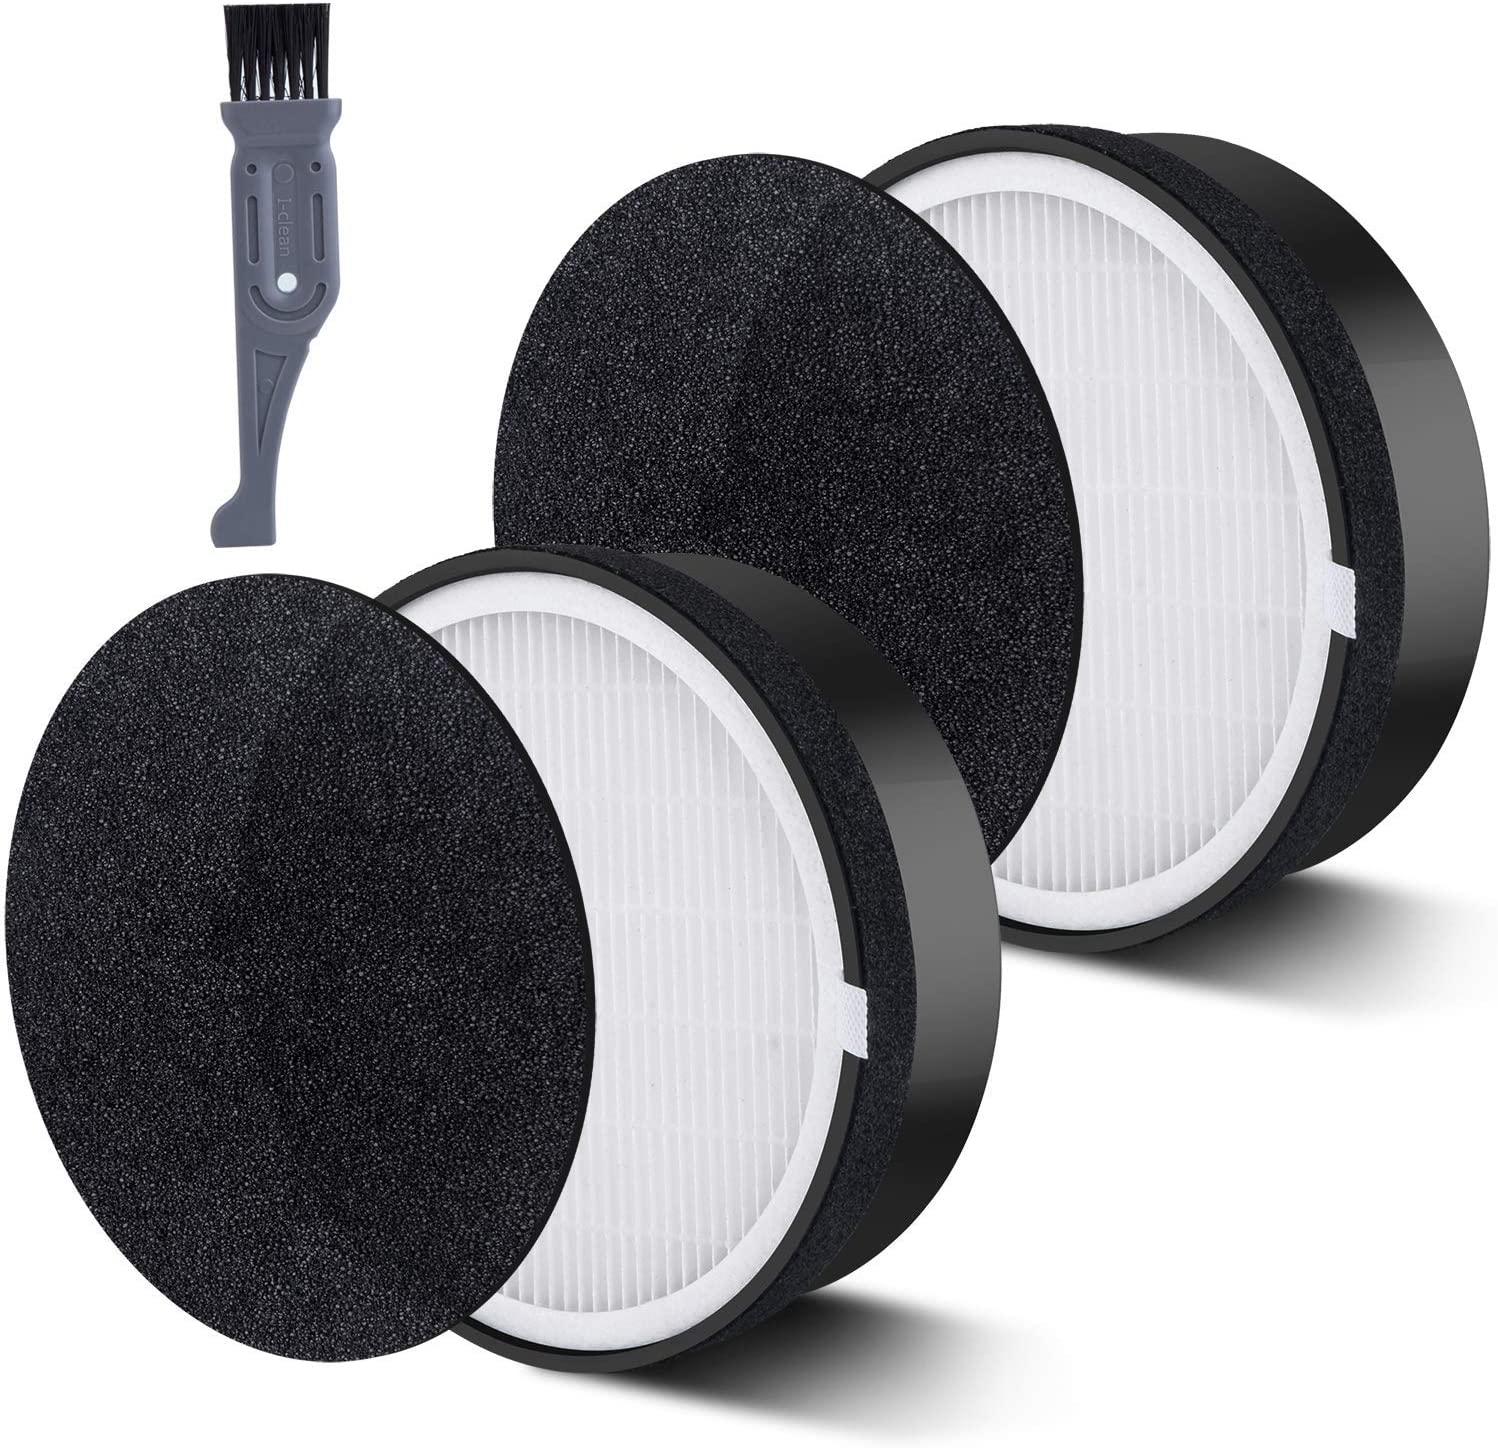 2 Packs Air Purifier Replacement Filter for LEVOIT LV-H132 LV-H132-RF HEPA Filter Replacement Activated Carbon Filters Set